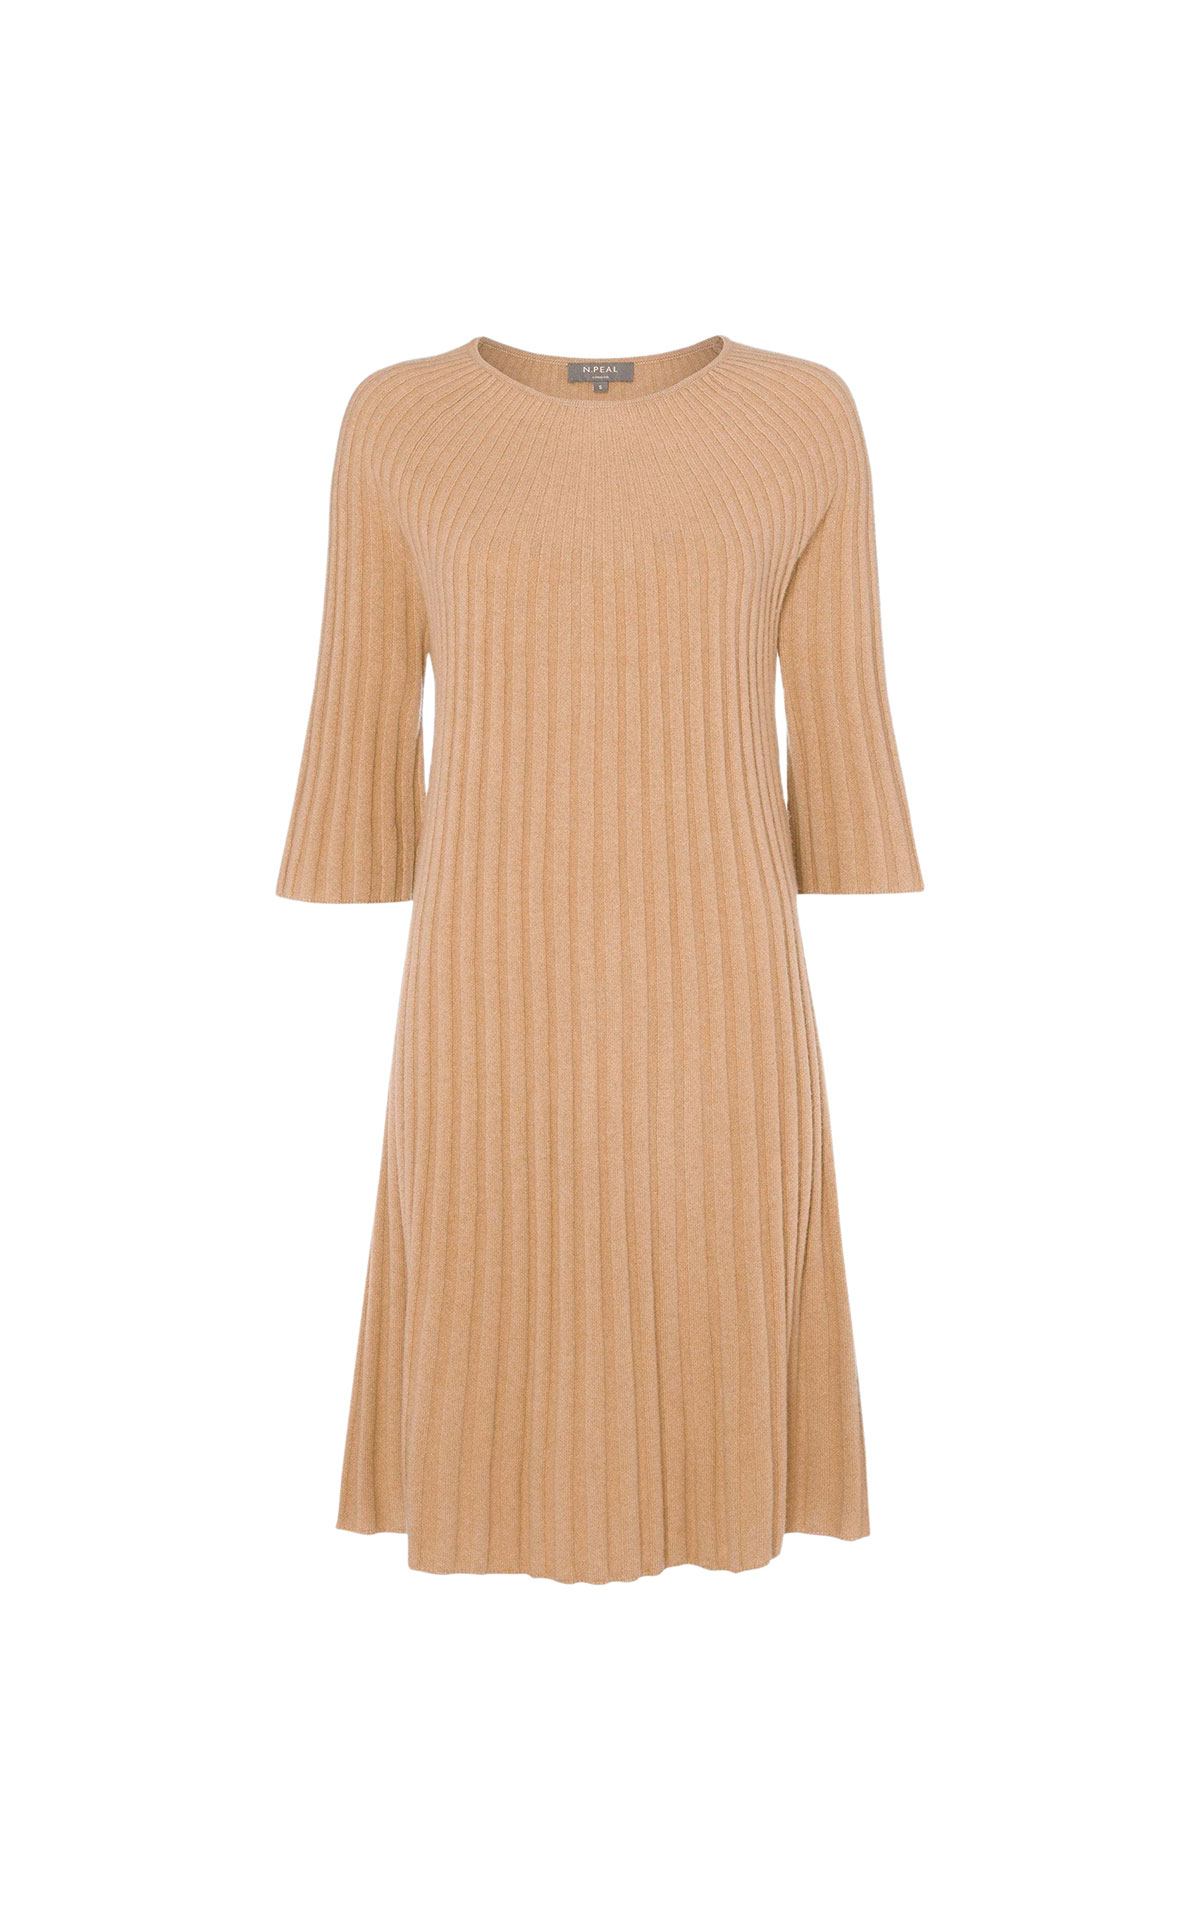 N.Peal Ribbed tunic dress from Bicester Village